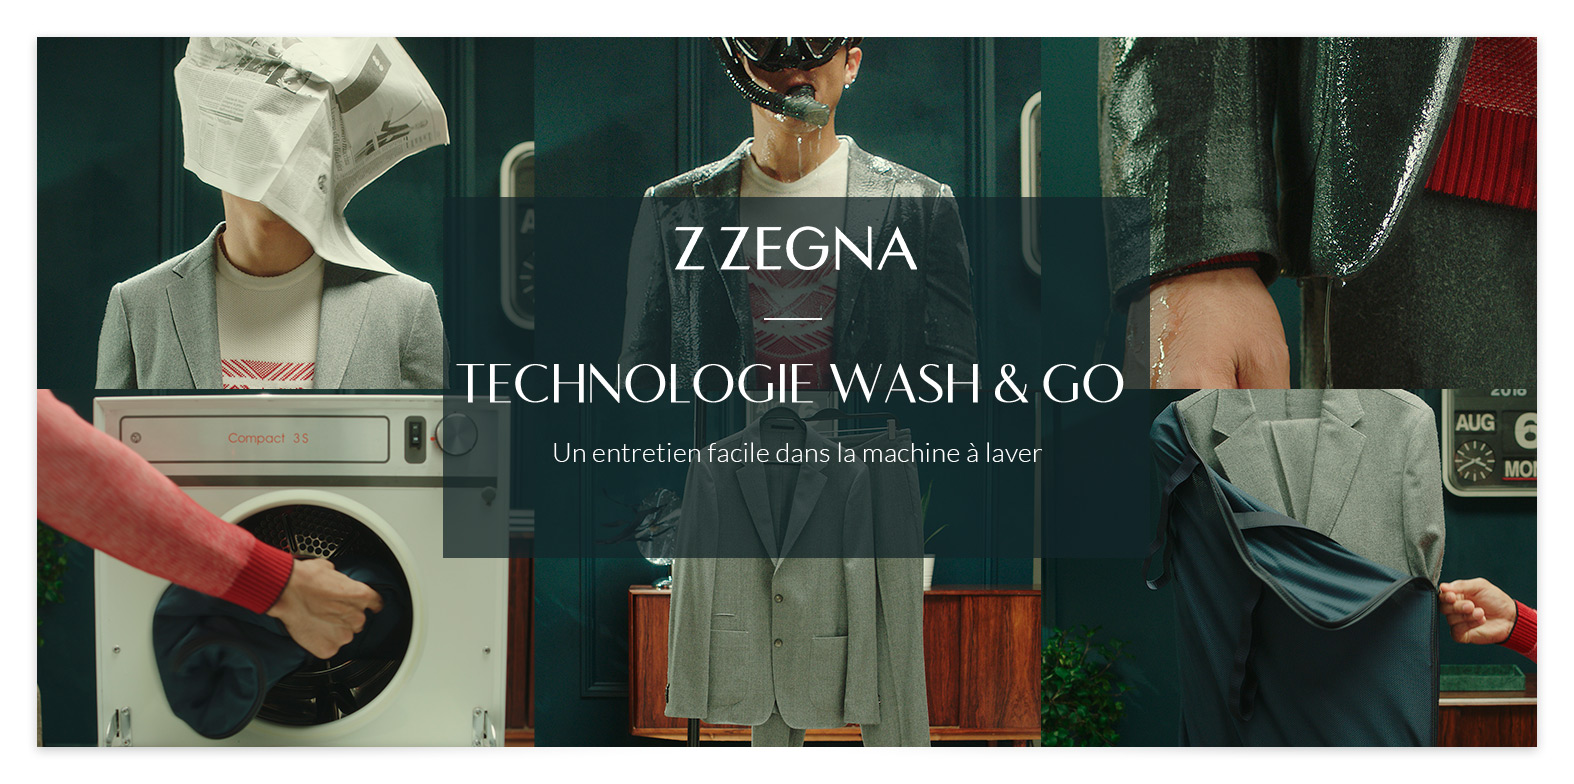 A18-BGL-DESIGNERS_HOMME_Complet Z Zenga.psd